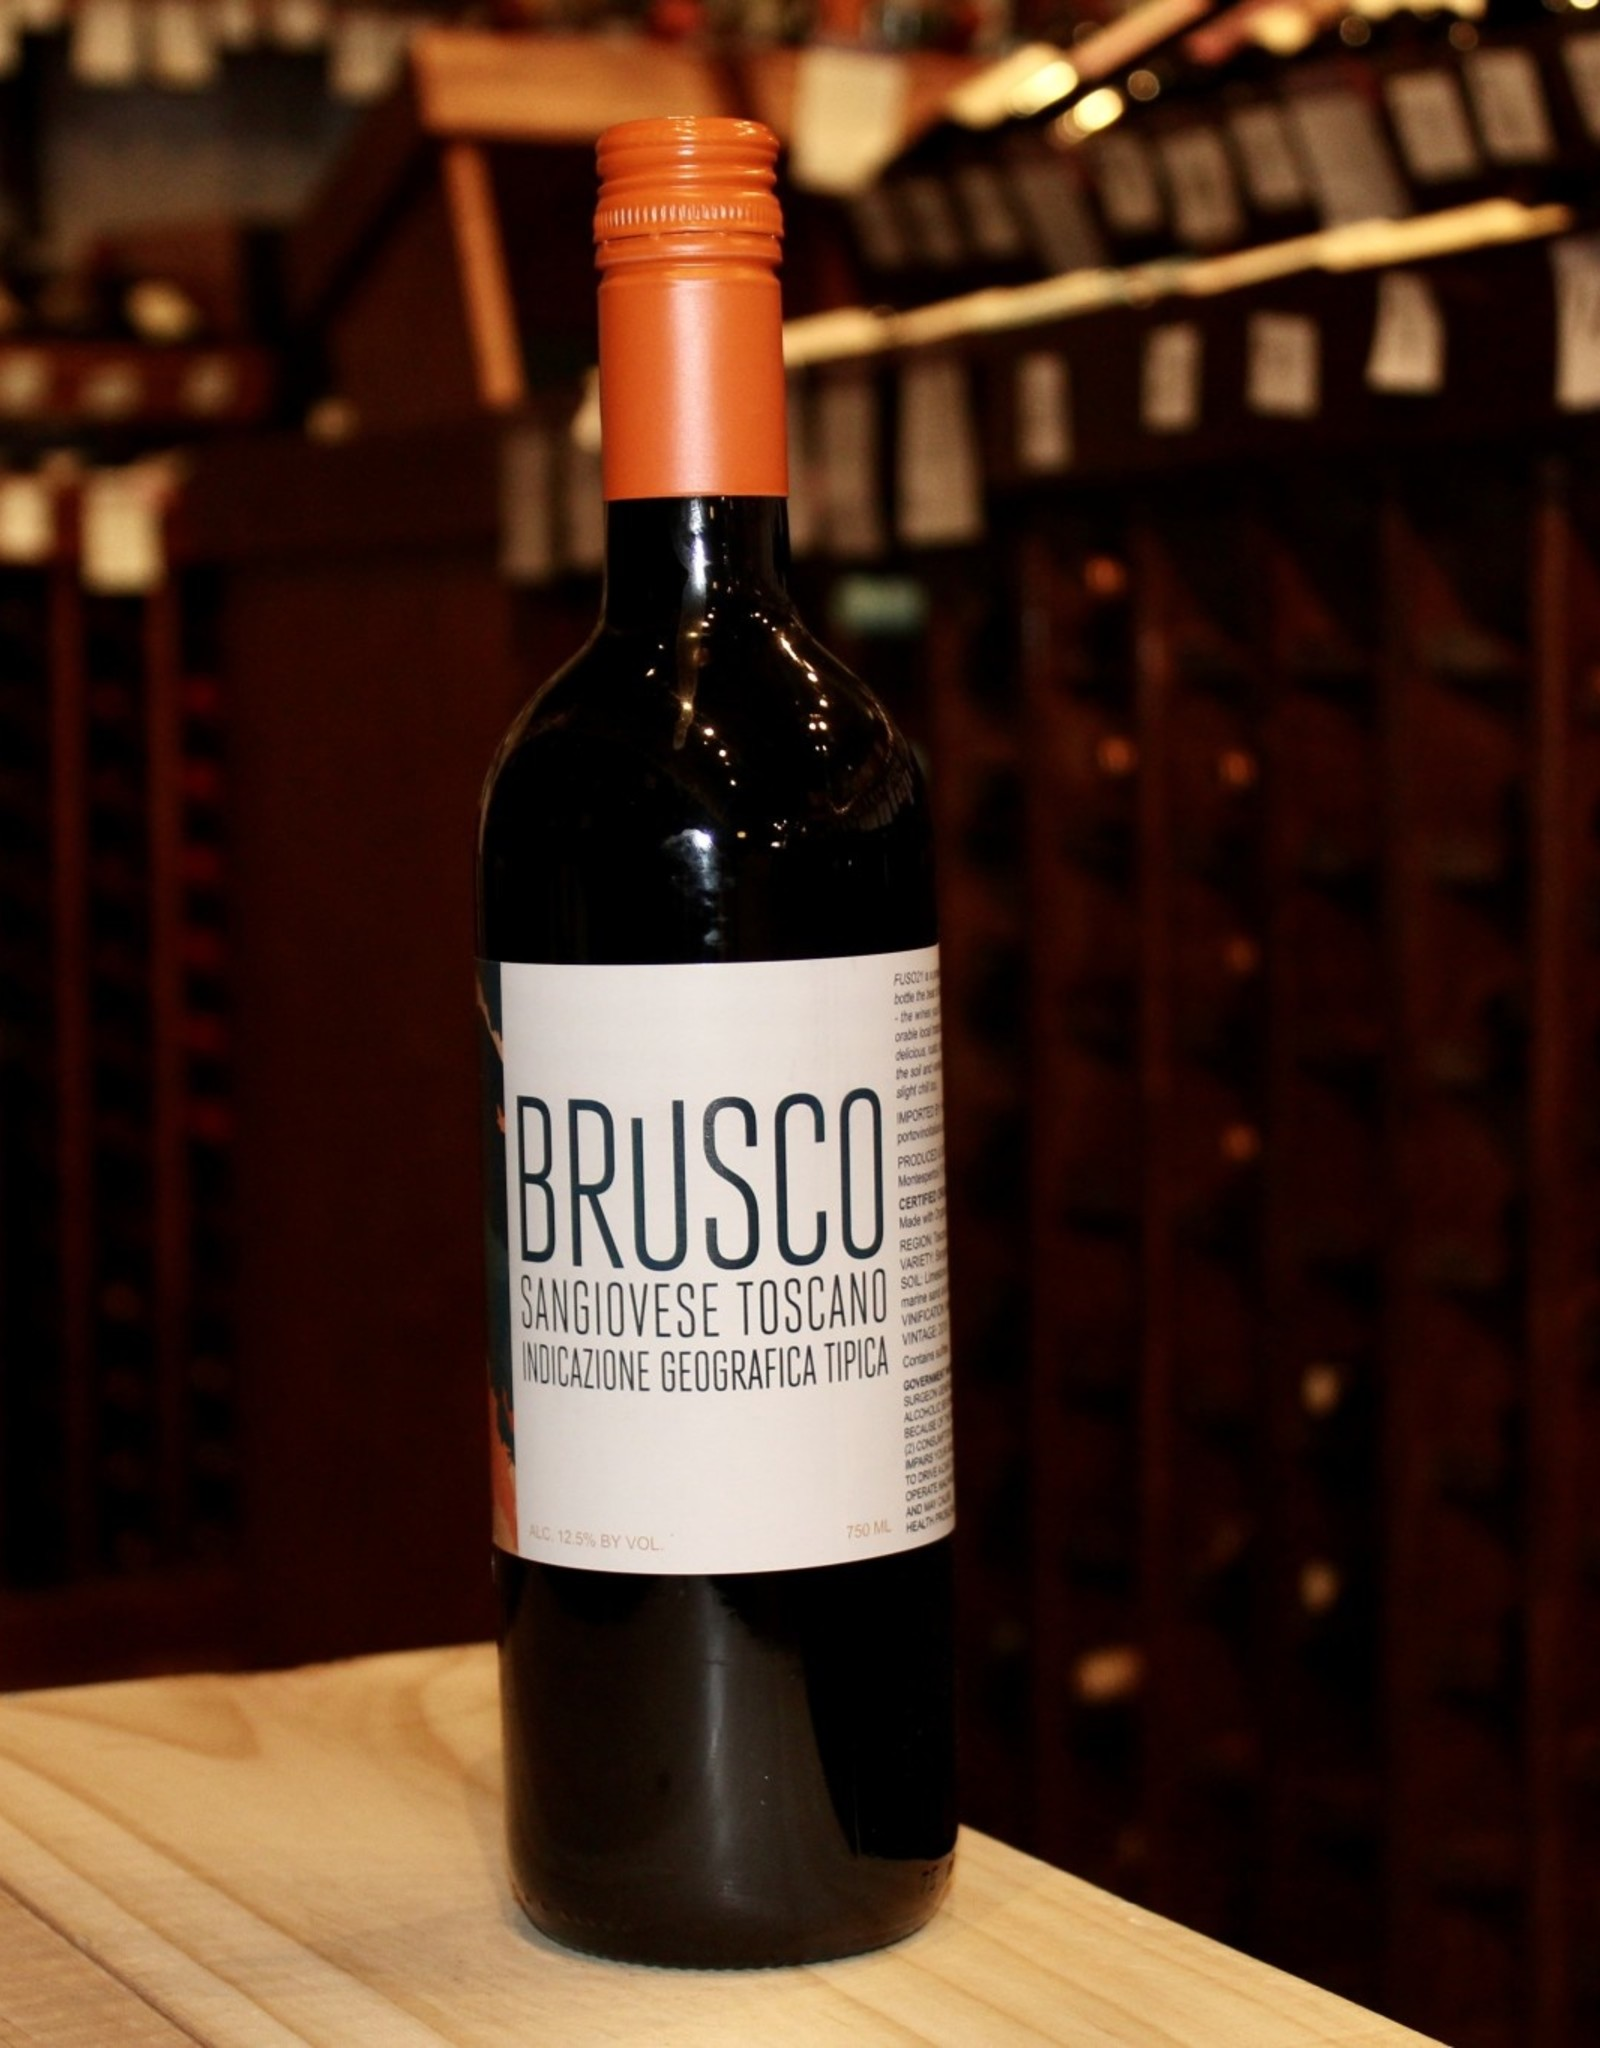 Wine 2018 Brusco Sangiovese - Tuscany, Italy (750ml)